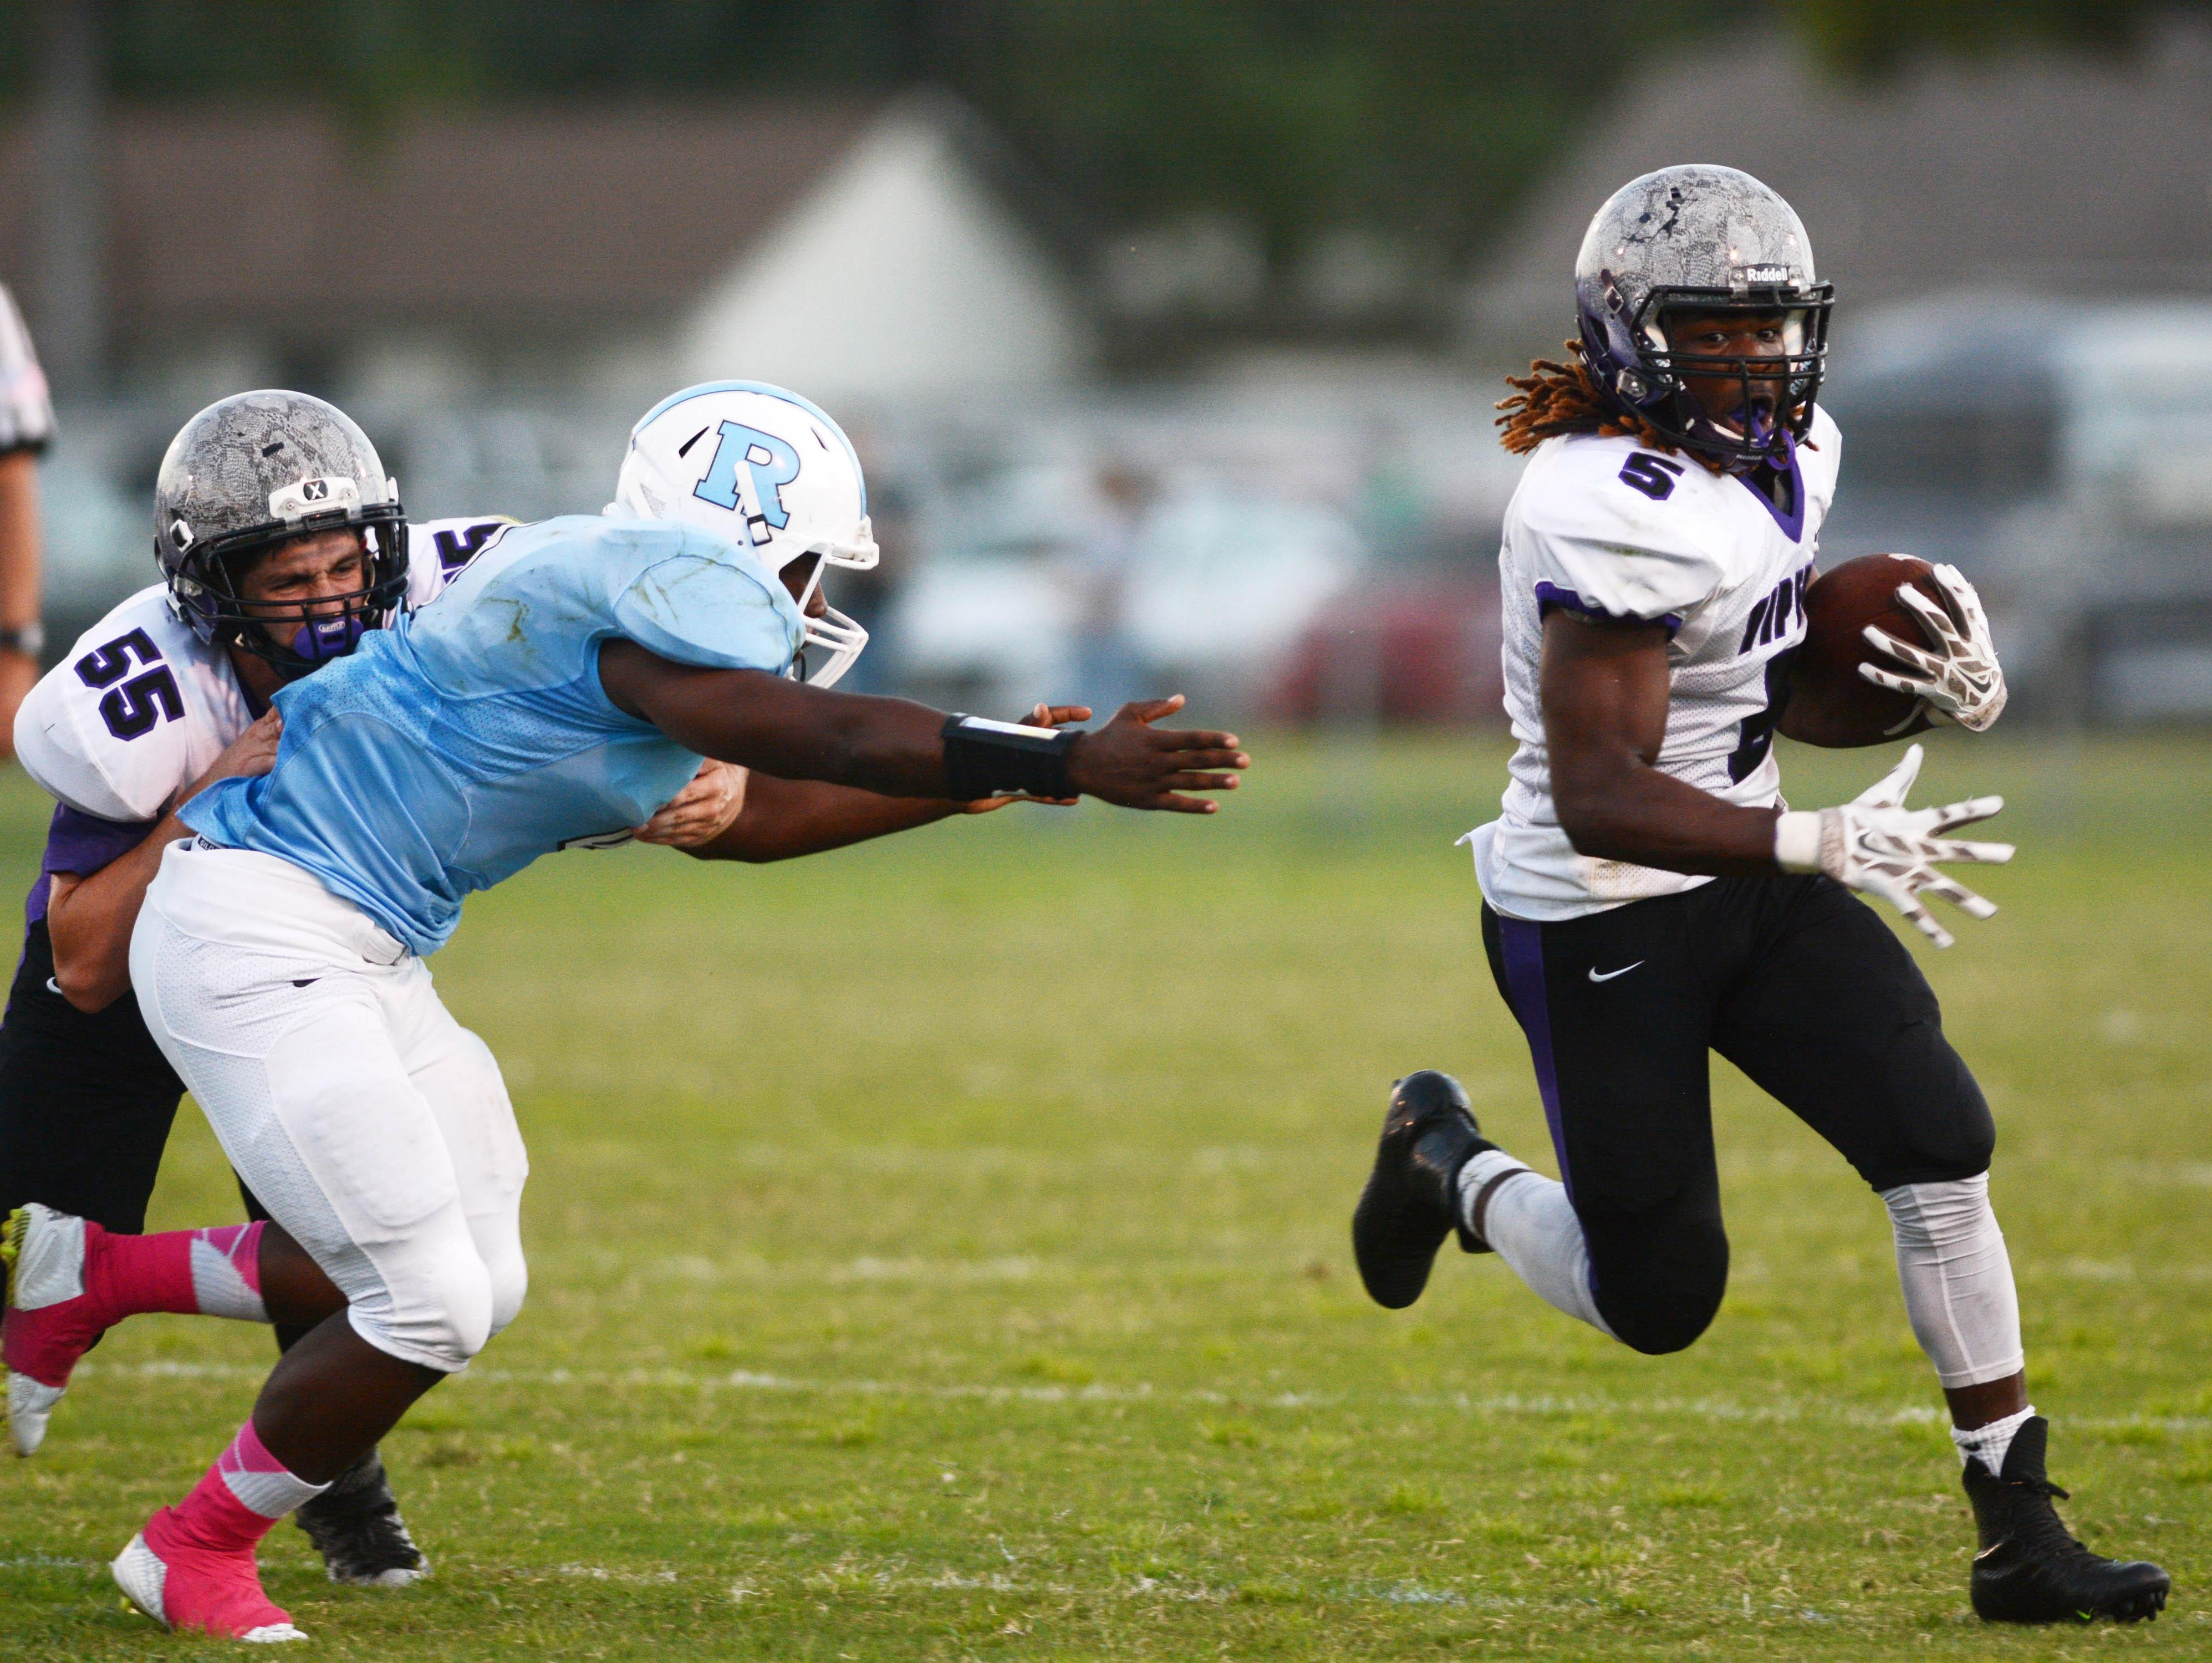 Corn Fulton of Space Coast runs away from the tackle of Rockleldge's LaQuentin Hastie during Friday's game at McLarty Stadium.